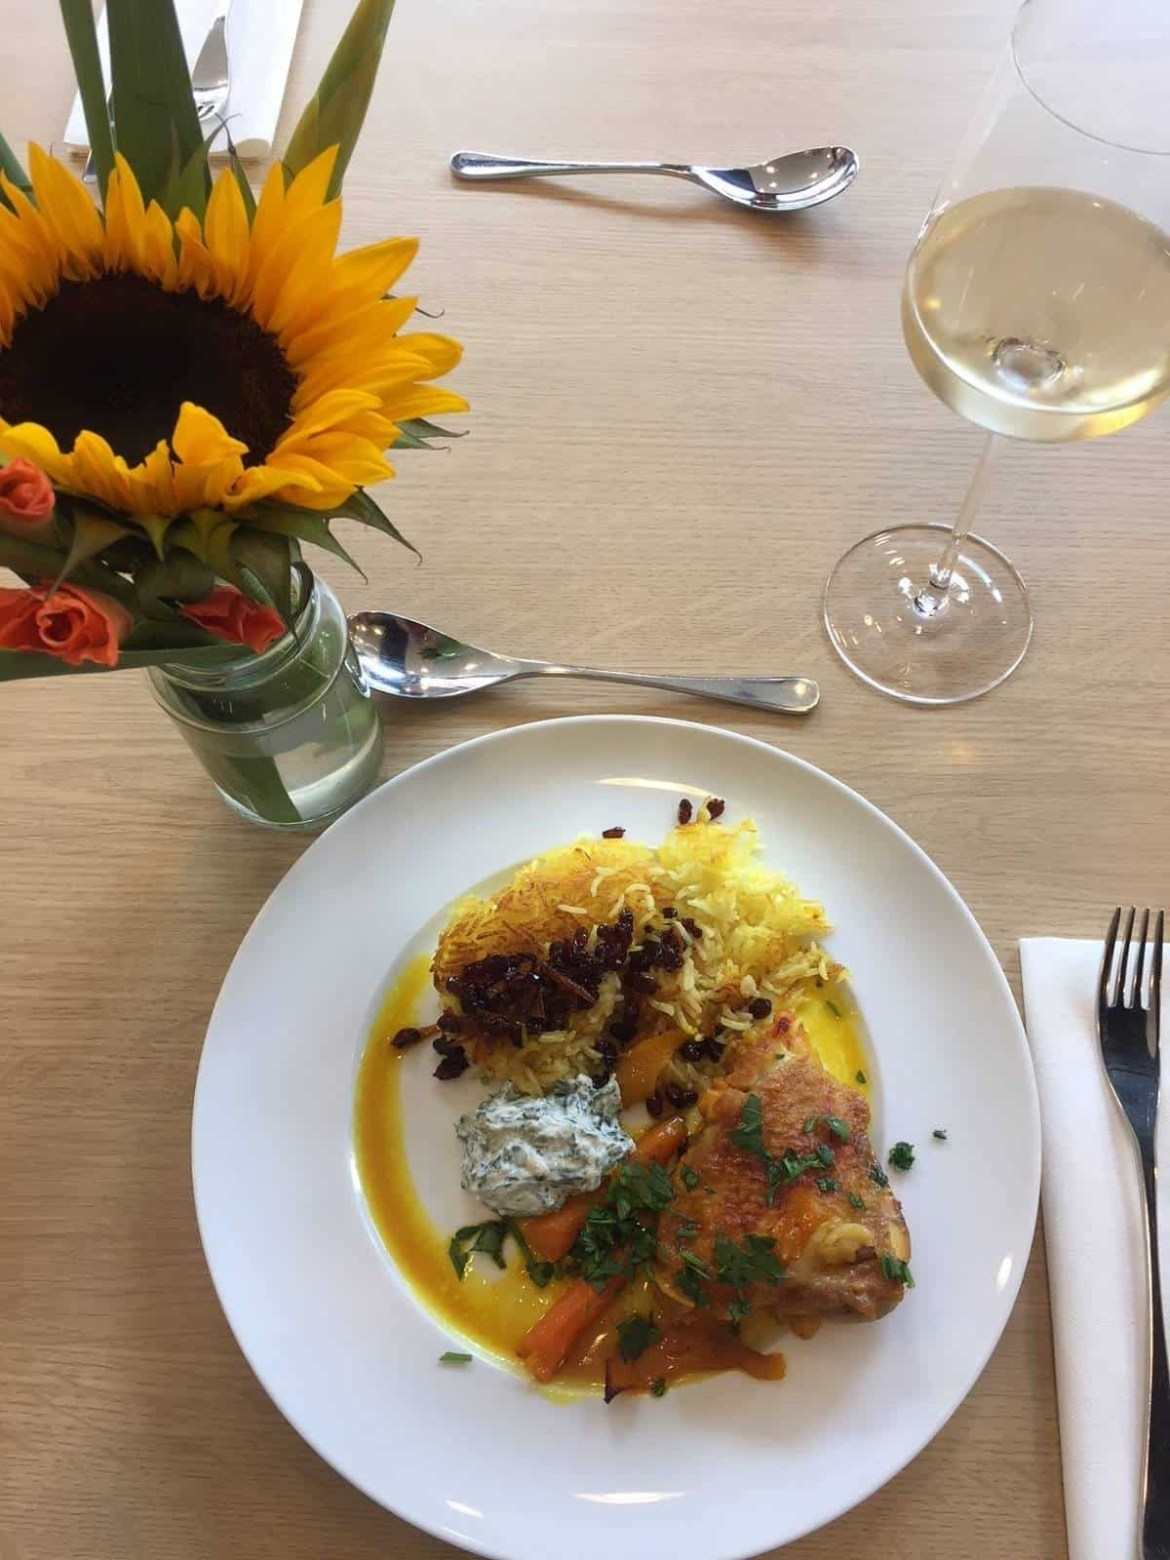 Saffron chicken with tahdig rice